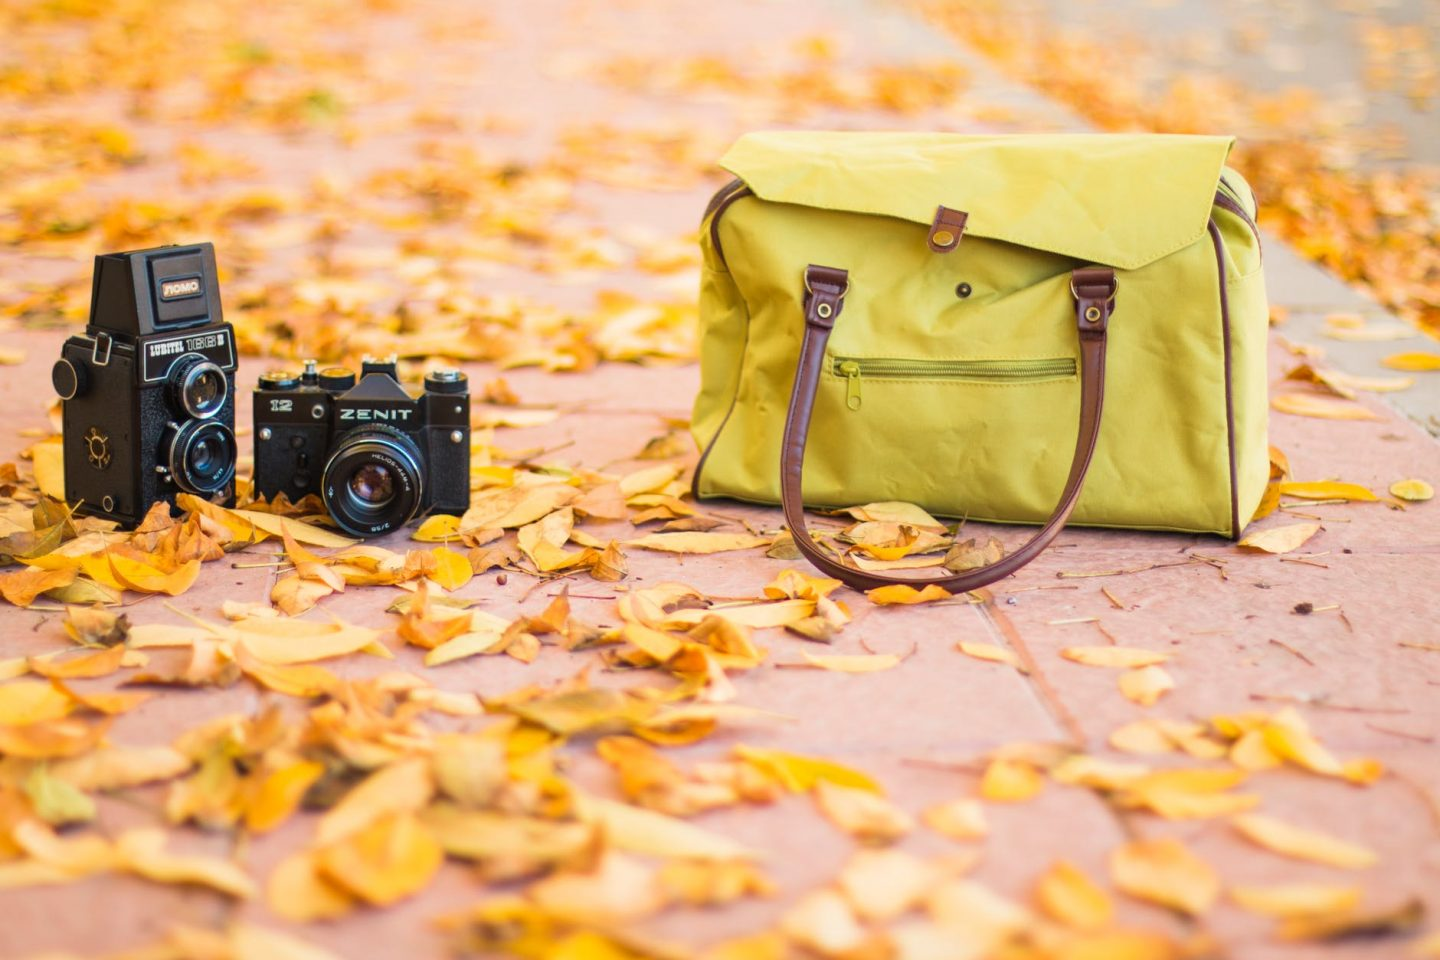 Holiday fashion: Green handbag on pavement with 2 cameras beside it and leaves all around.